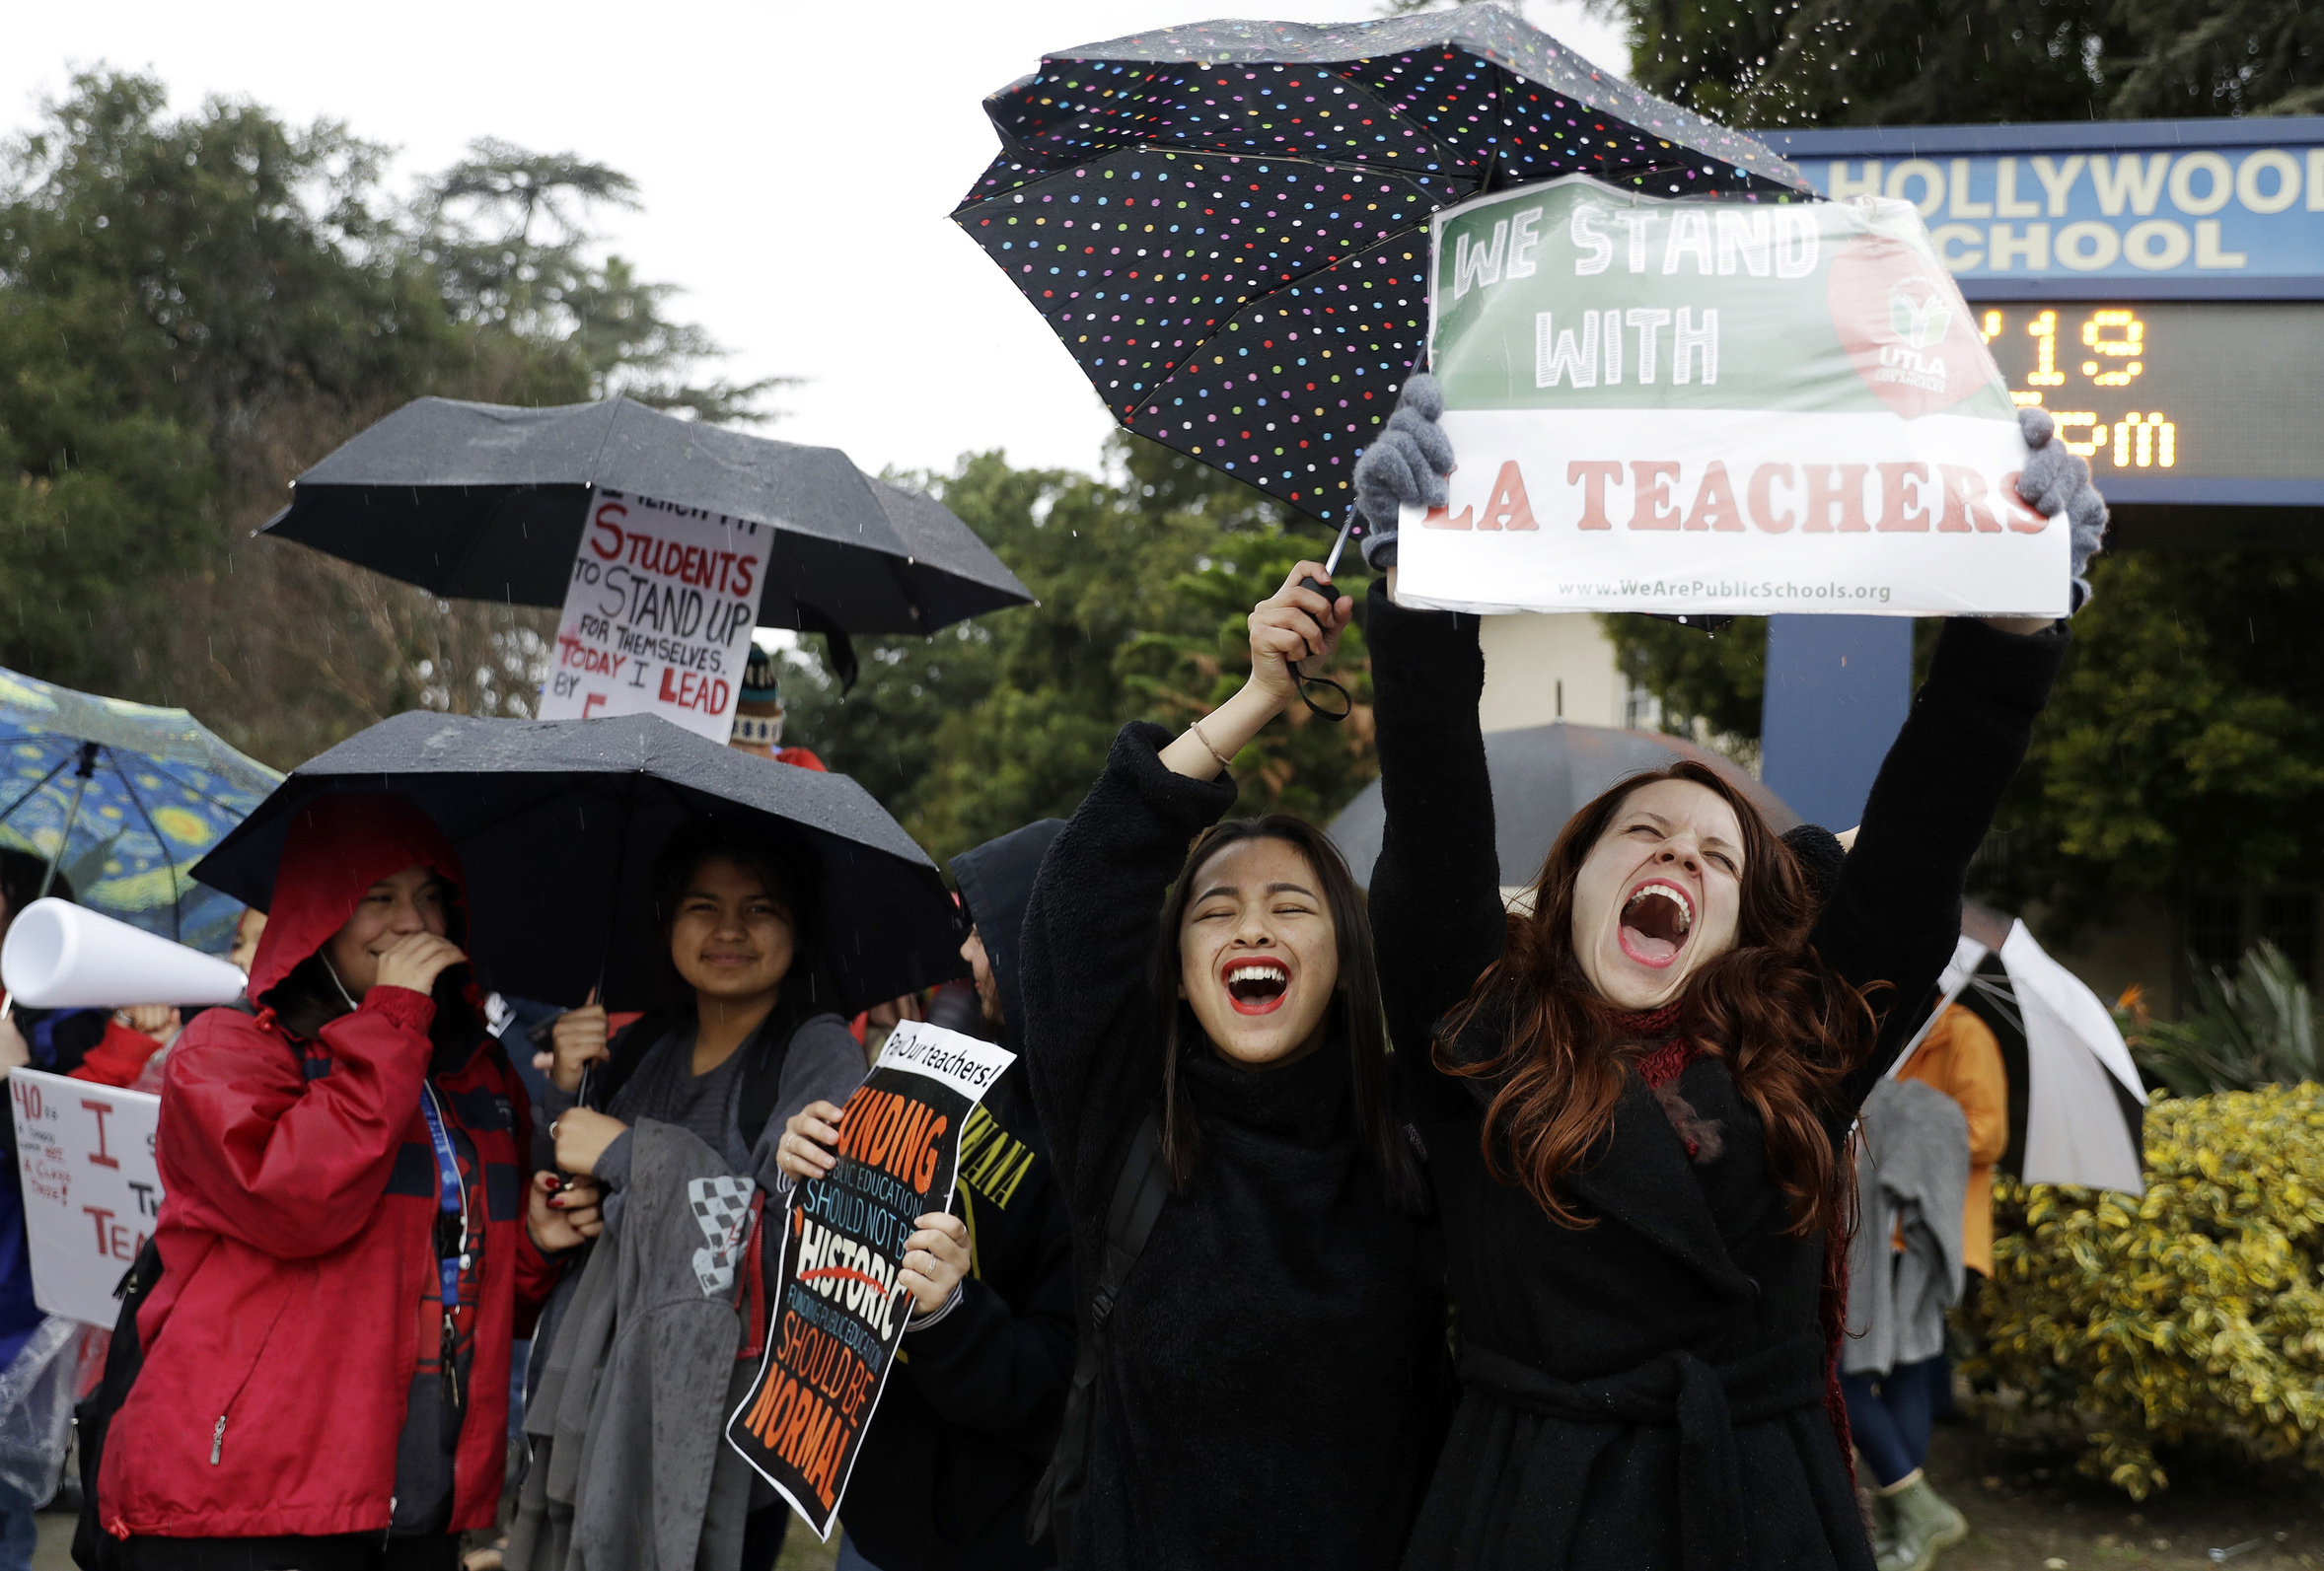 Maria Arienza, right, an English and Spanish teacher, shouts slogans alongside her student Stephanie Medrano, second from right, outside of North Hollywood High School Tuesday, Jan. 15, 2019, in Los Angeles. Teachers in the huge Los Angeles Unified School District walked picket lines again Tuesday as administrators urged them to return to classrooms and for their union to return to the bargaining table. (AP Photo/Marcio Jose Sanchez)